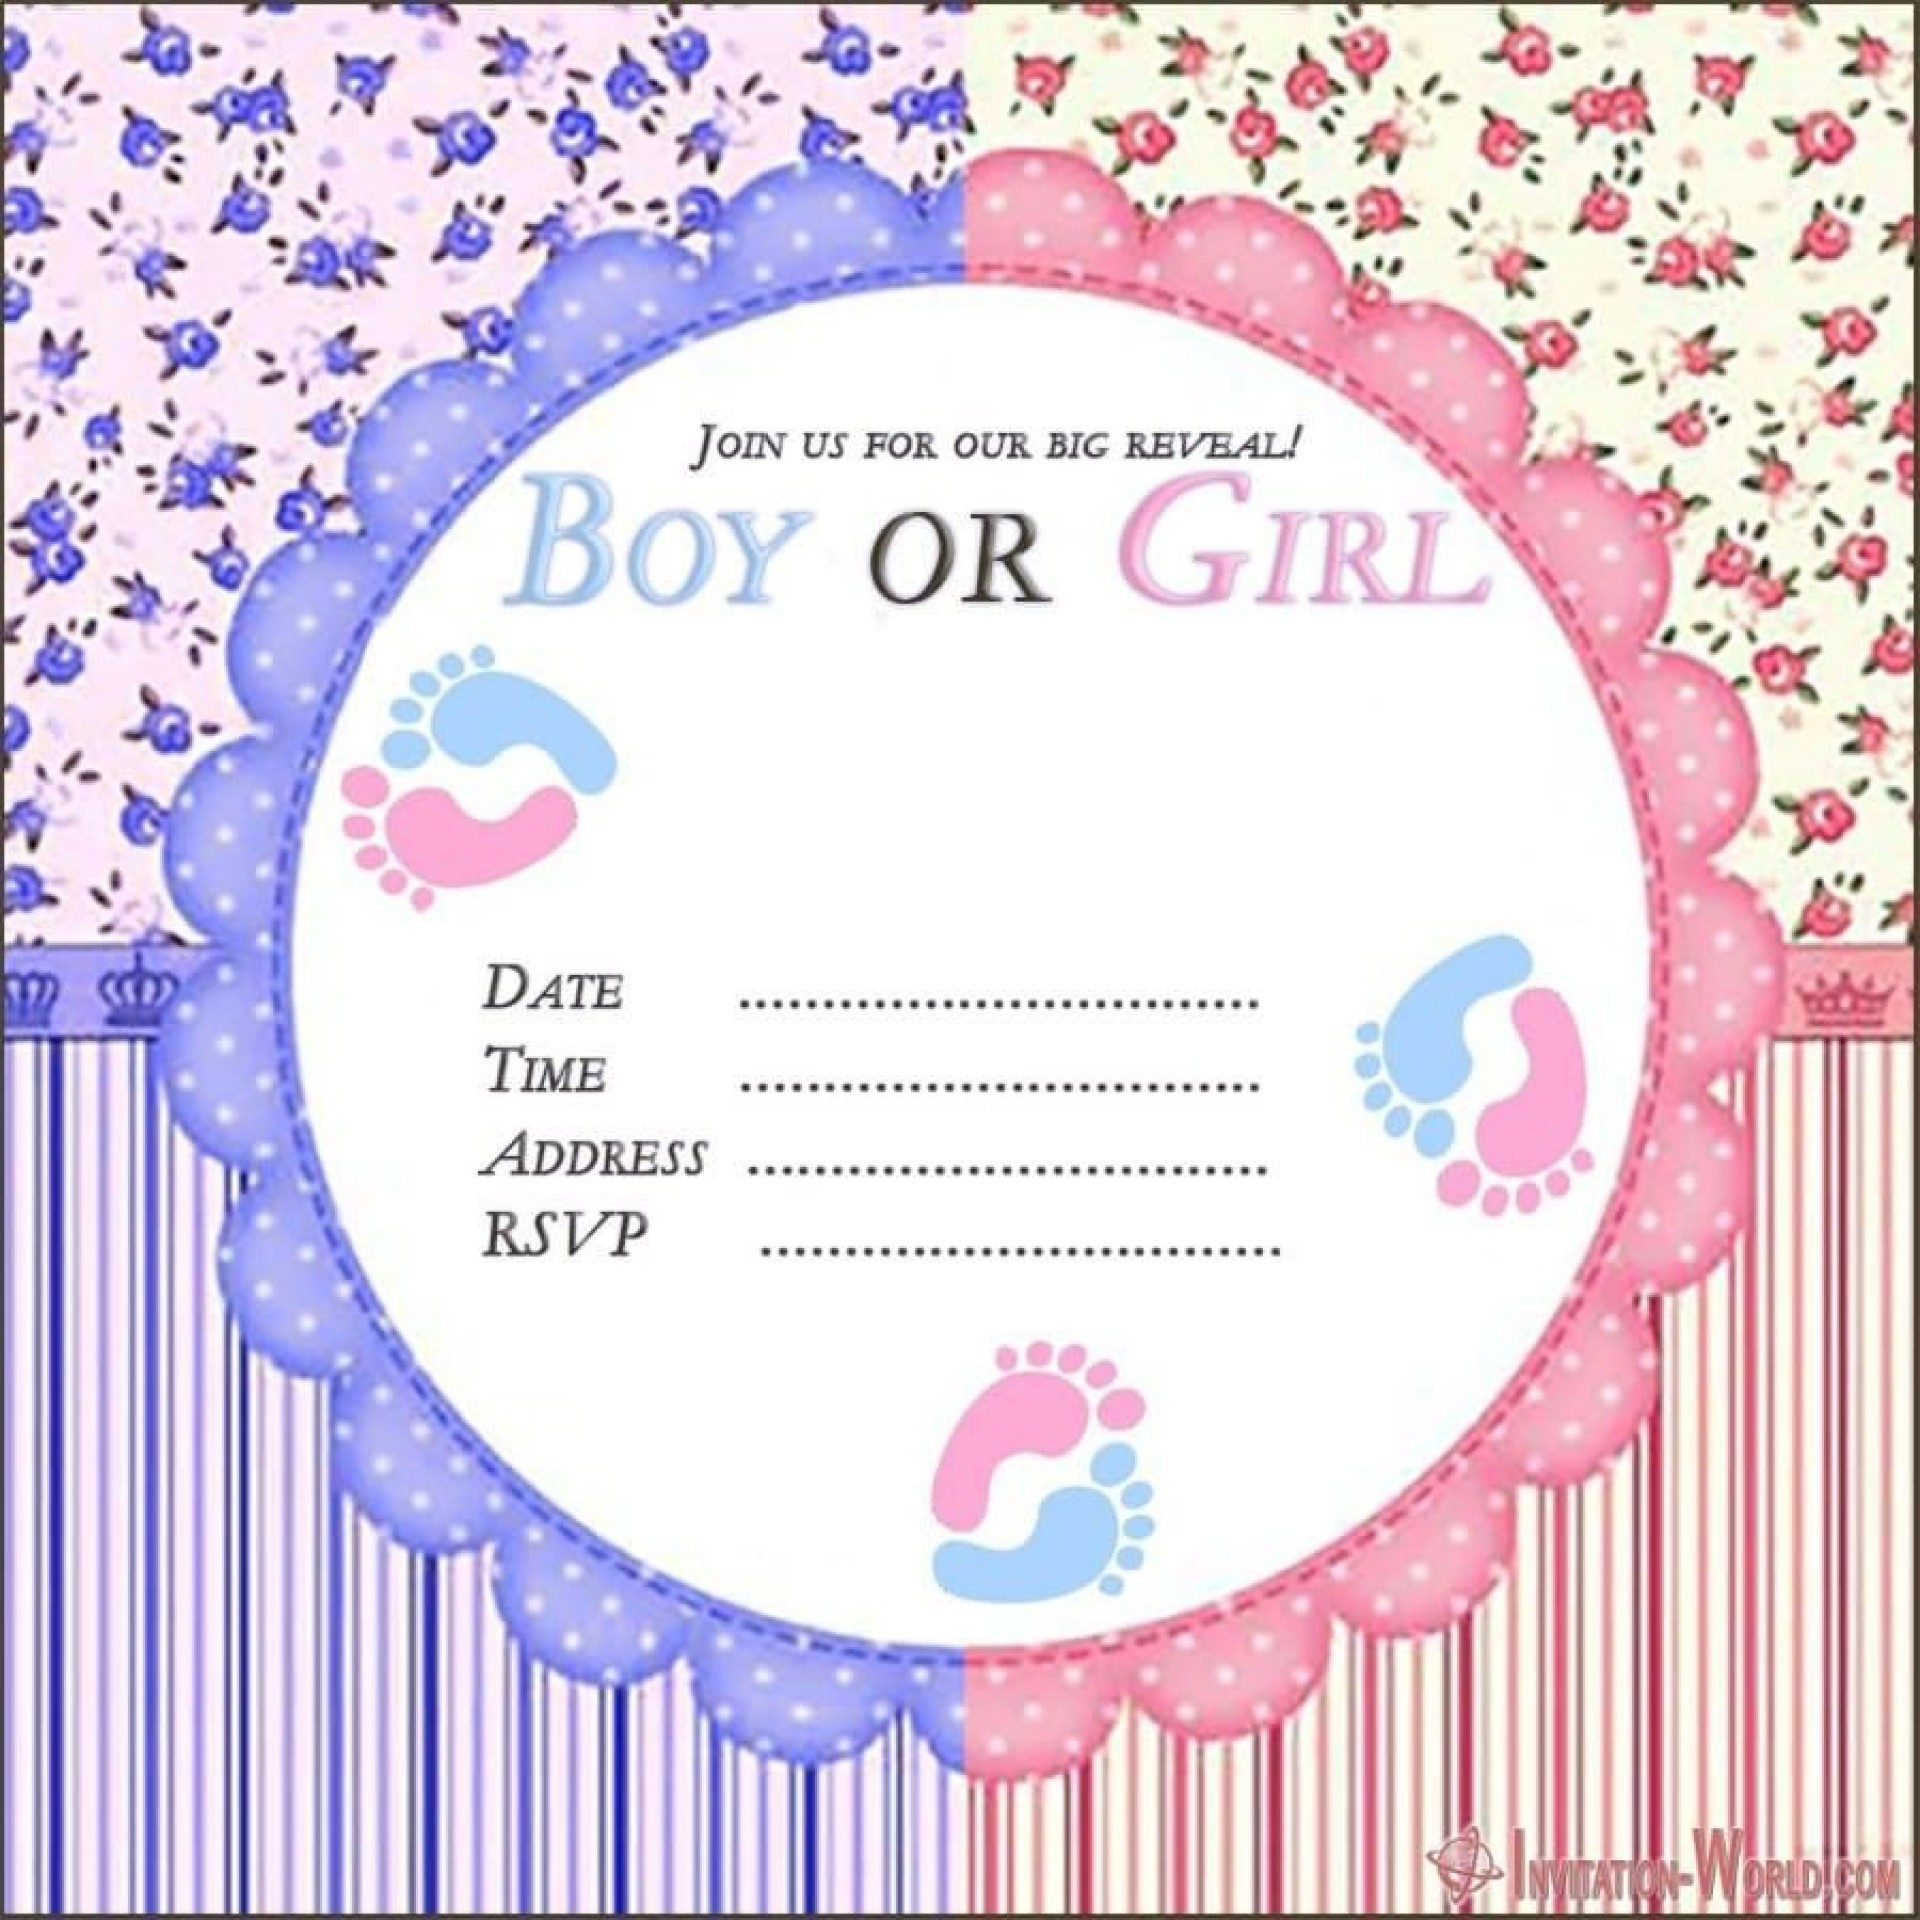 007 Incredible Gender Reveal Invitation Template Idea  Templates Party Free Printable Maker1920